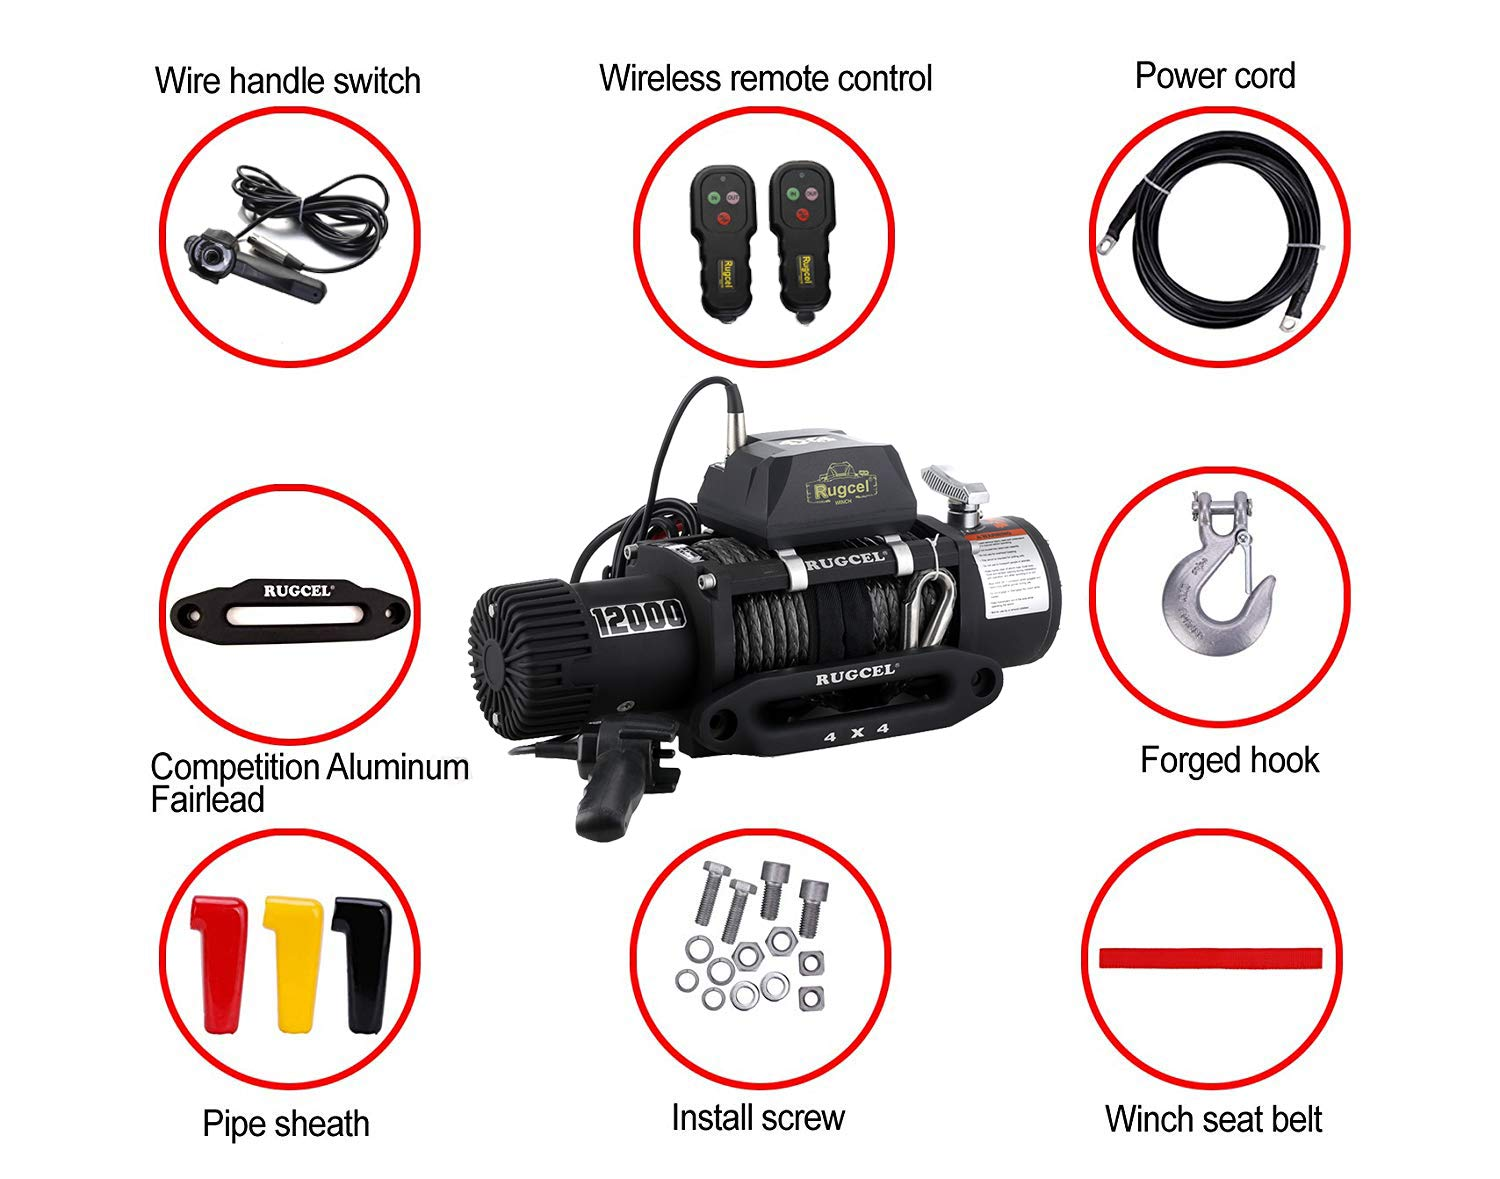 RUGCEL WINCH Waterproof IP68 Offroad Load Capacity 6.6Hp 12V Electric Winch with Hawse Fairlead, Synthetic Rope, 2 Wired Handle and 2 Wireless Remote (12000LB) by RUGCEL WINCH (Image #2)